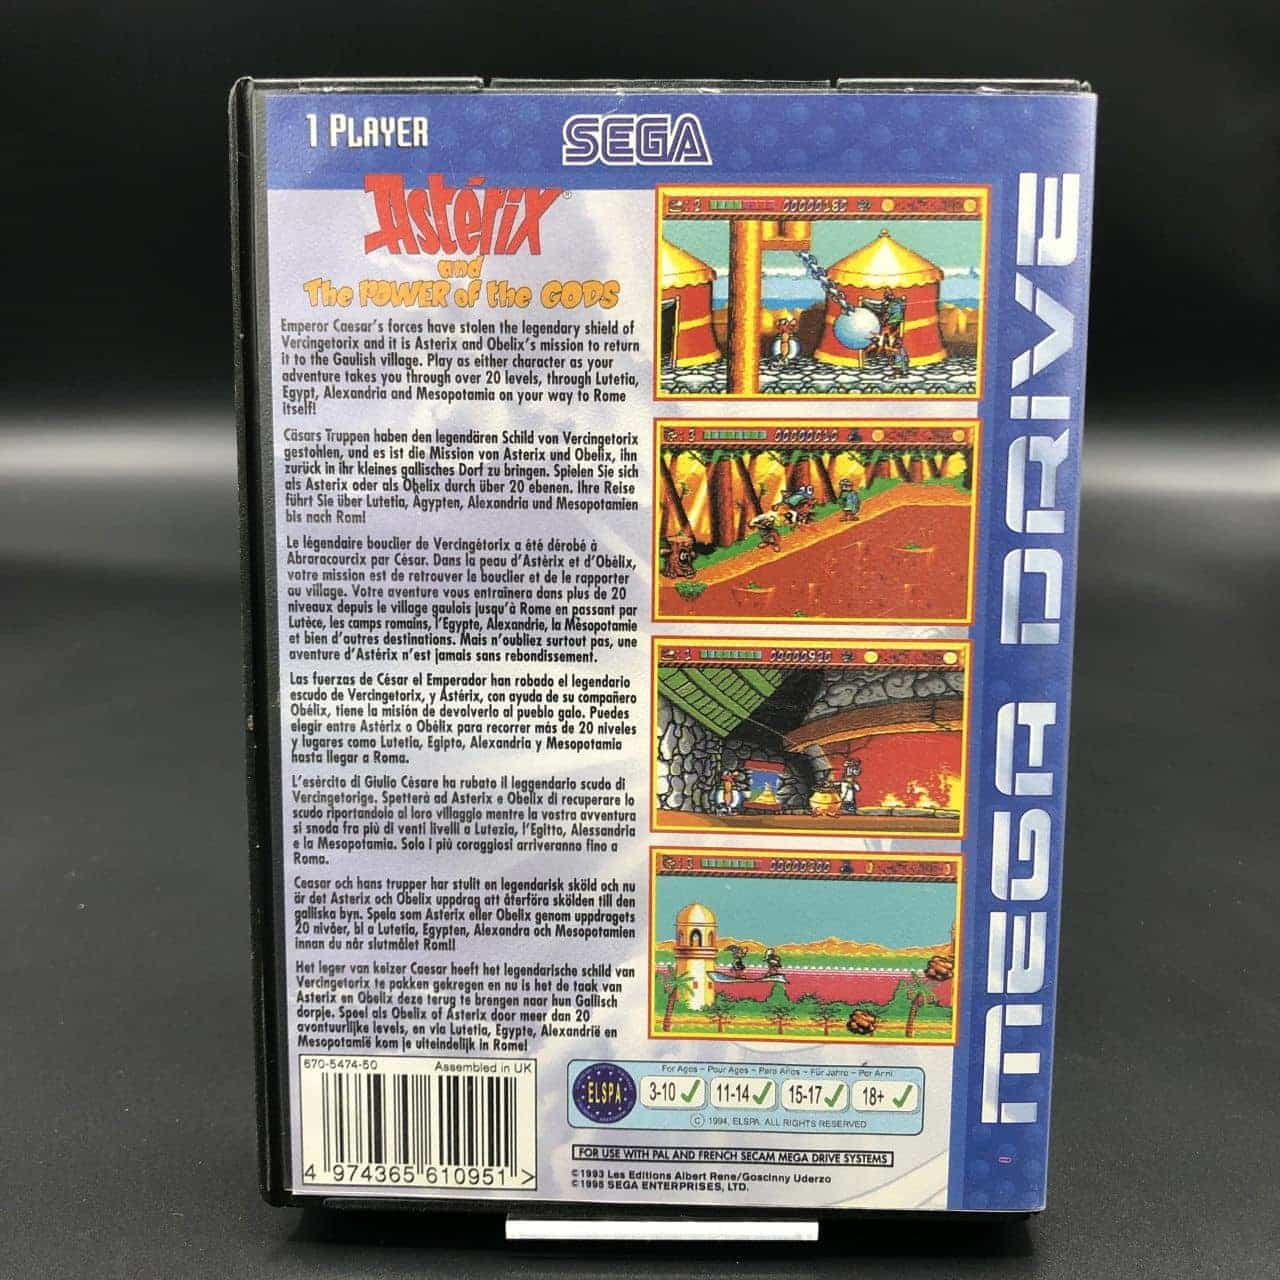 Asterix and the Power of the Gods (ohne Anleitung) (Sehr gut) Sega Mega Drive